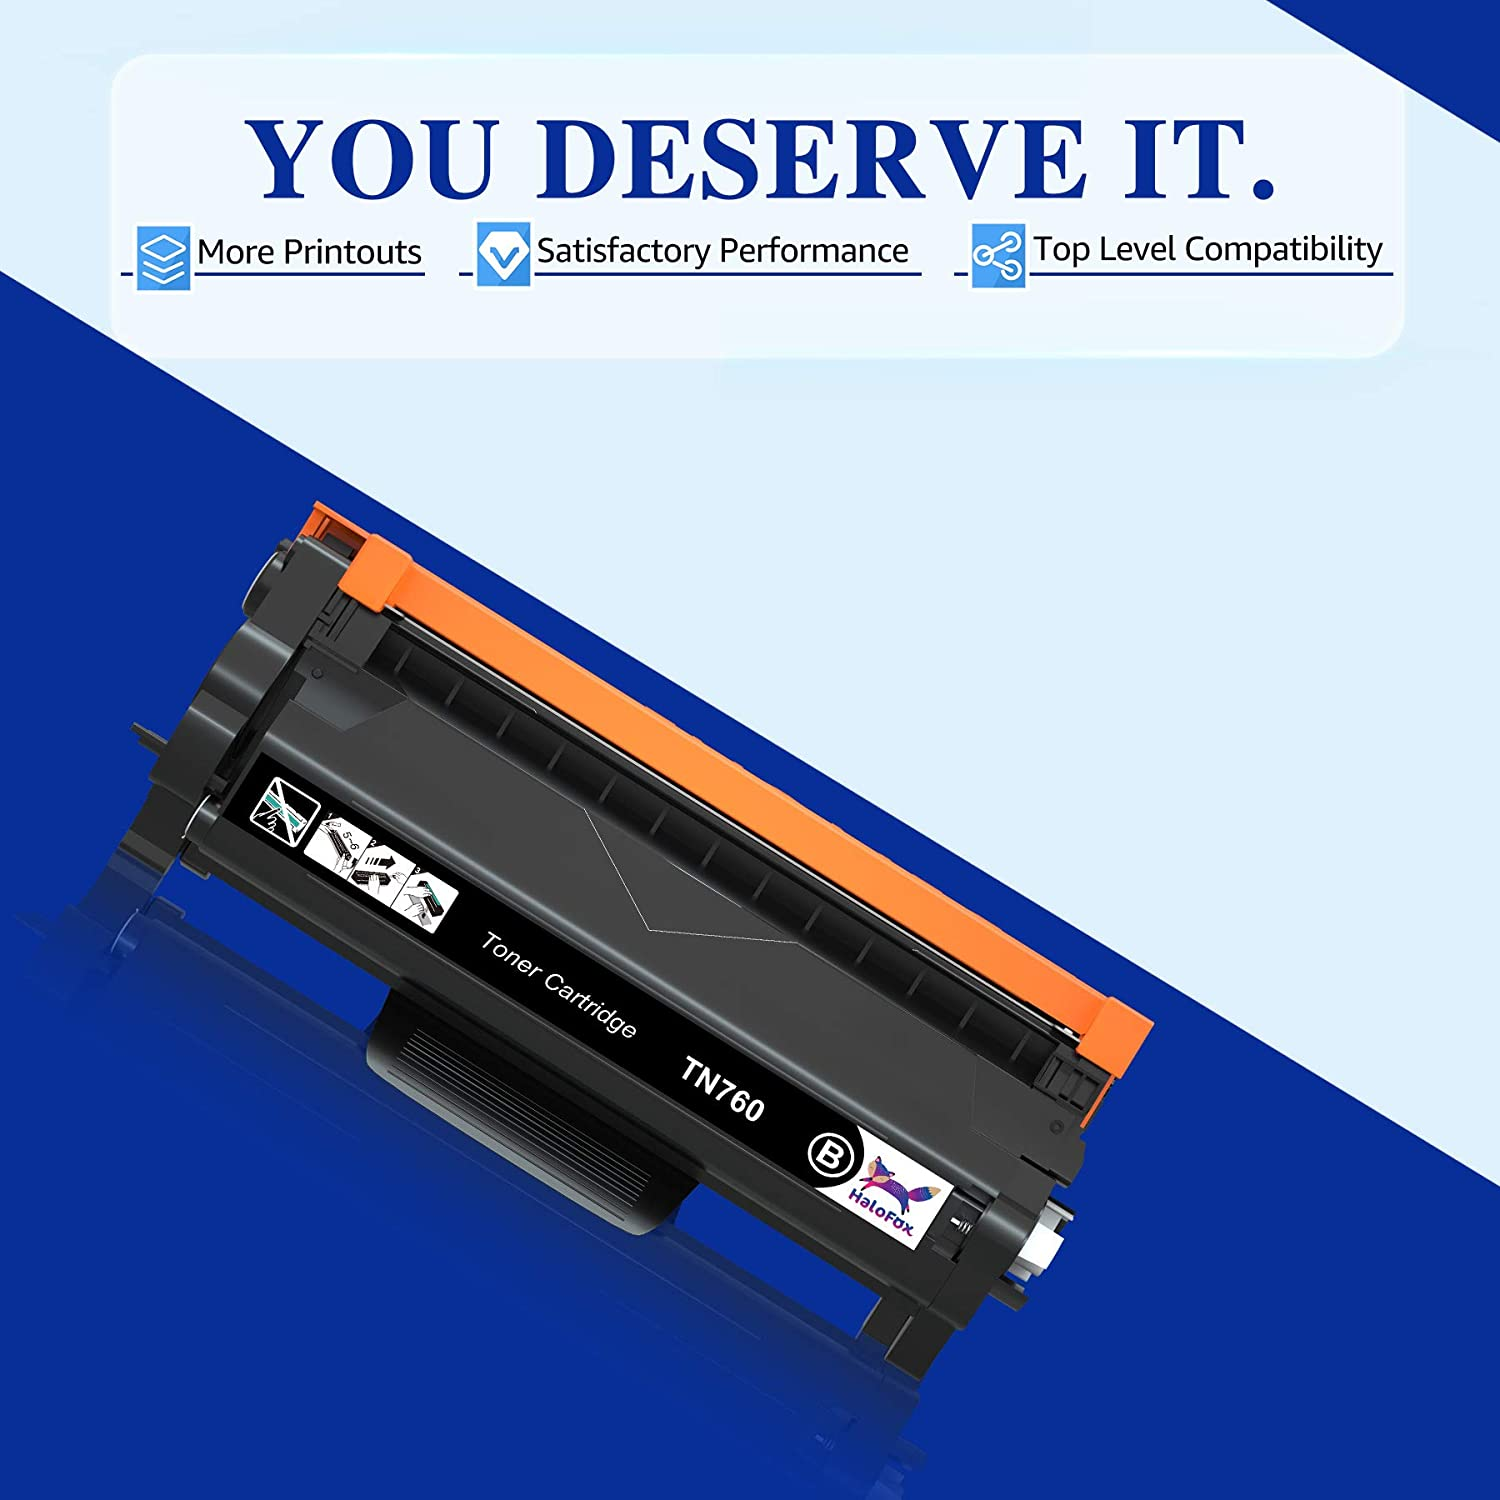 Black, 2-Pack HaloFox Compatible Toner Cartridge Replacement for Brother TN760 TN-760 TN730 TN-730 for Brother HL-L2350DW HL-L2395DW HL-L2390DW HL-L2370DW MFC-L2750DW MFC-L2710DW DCP-L2550DW